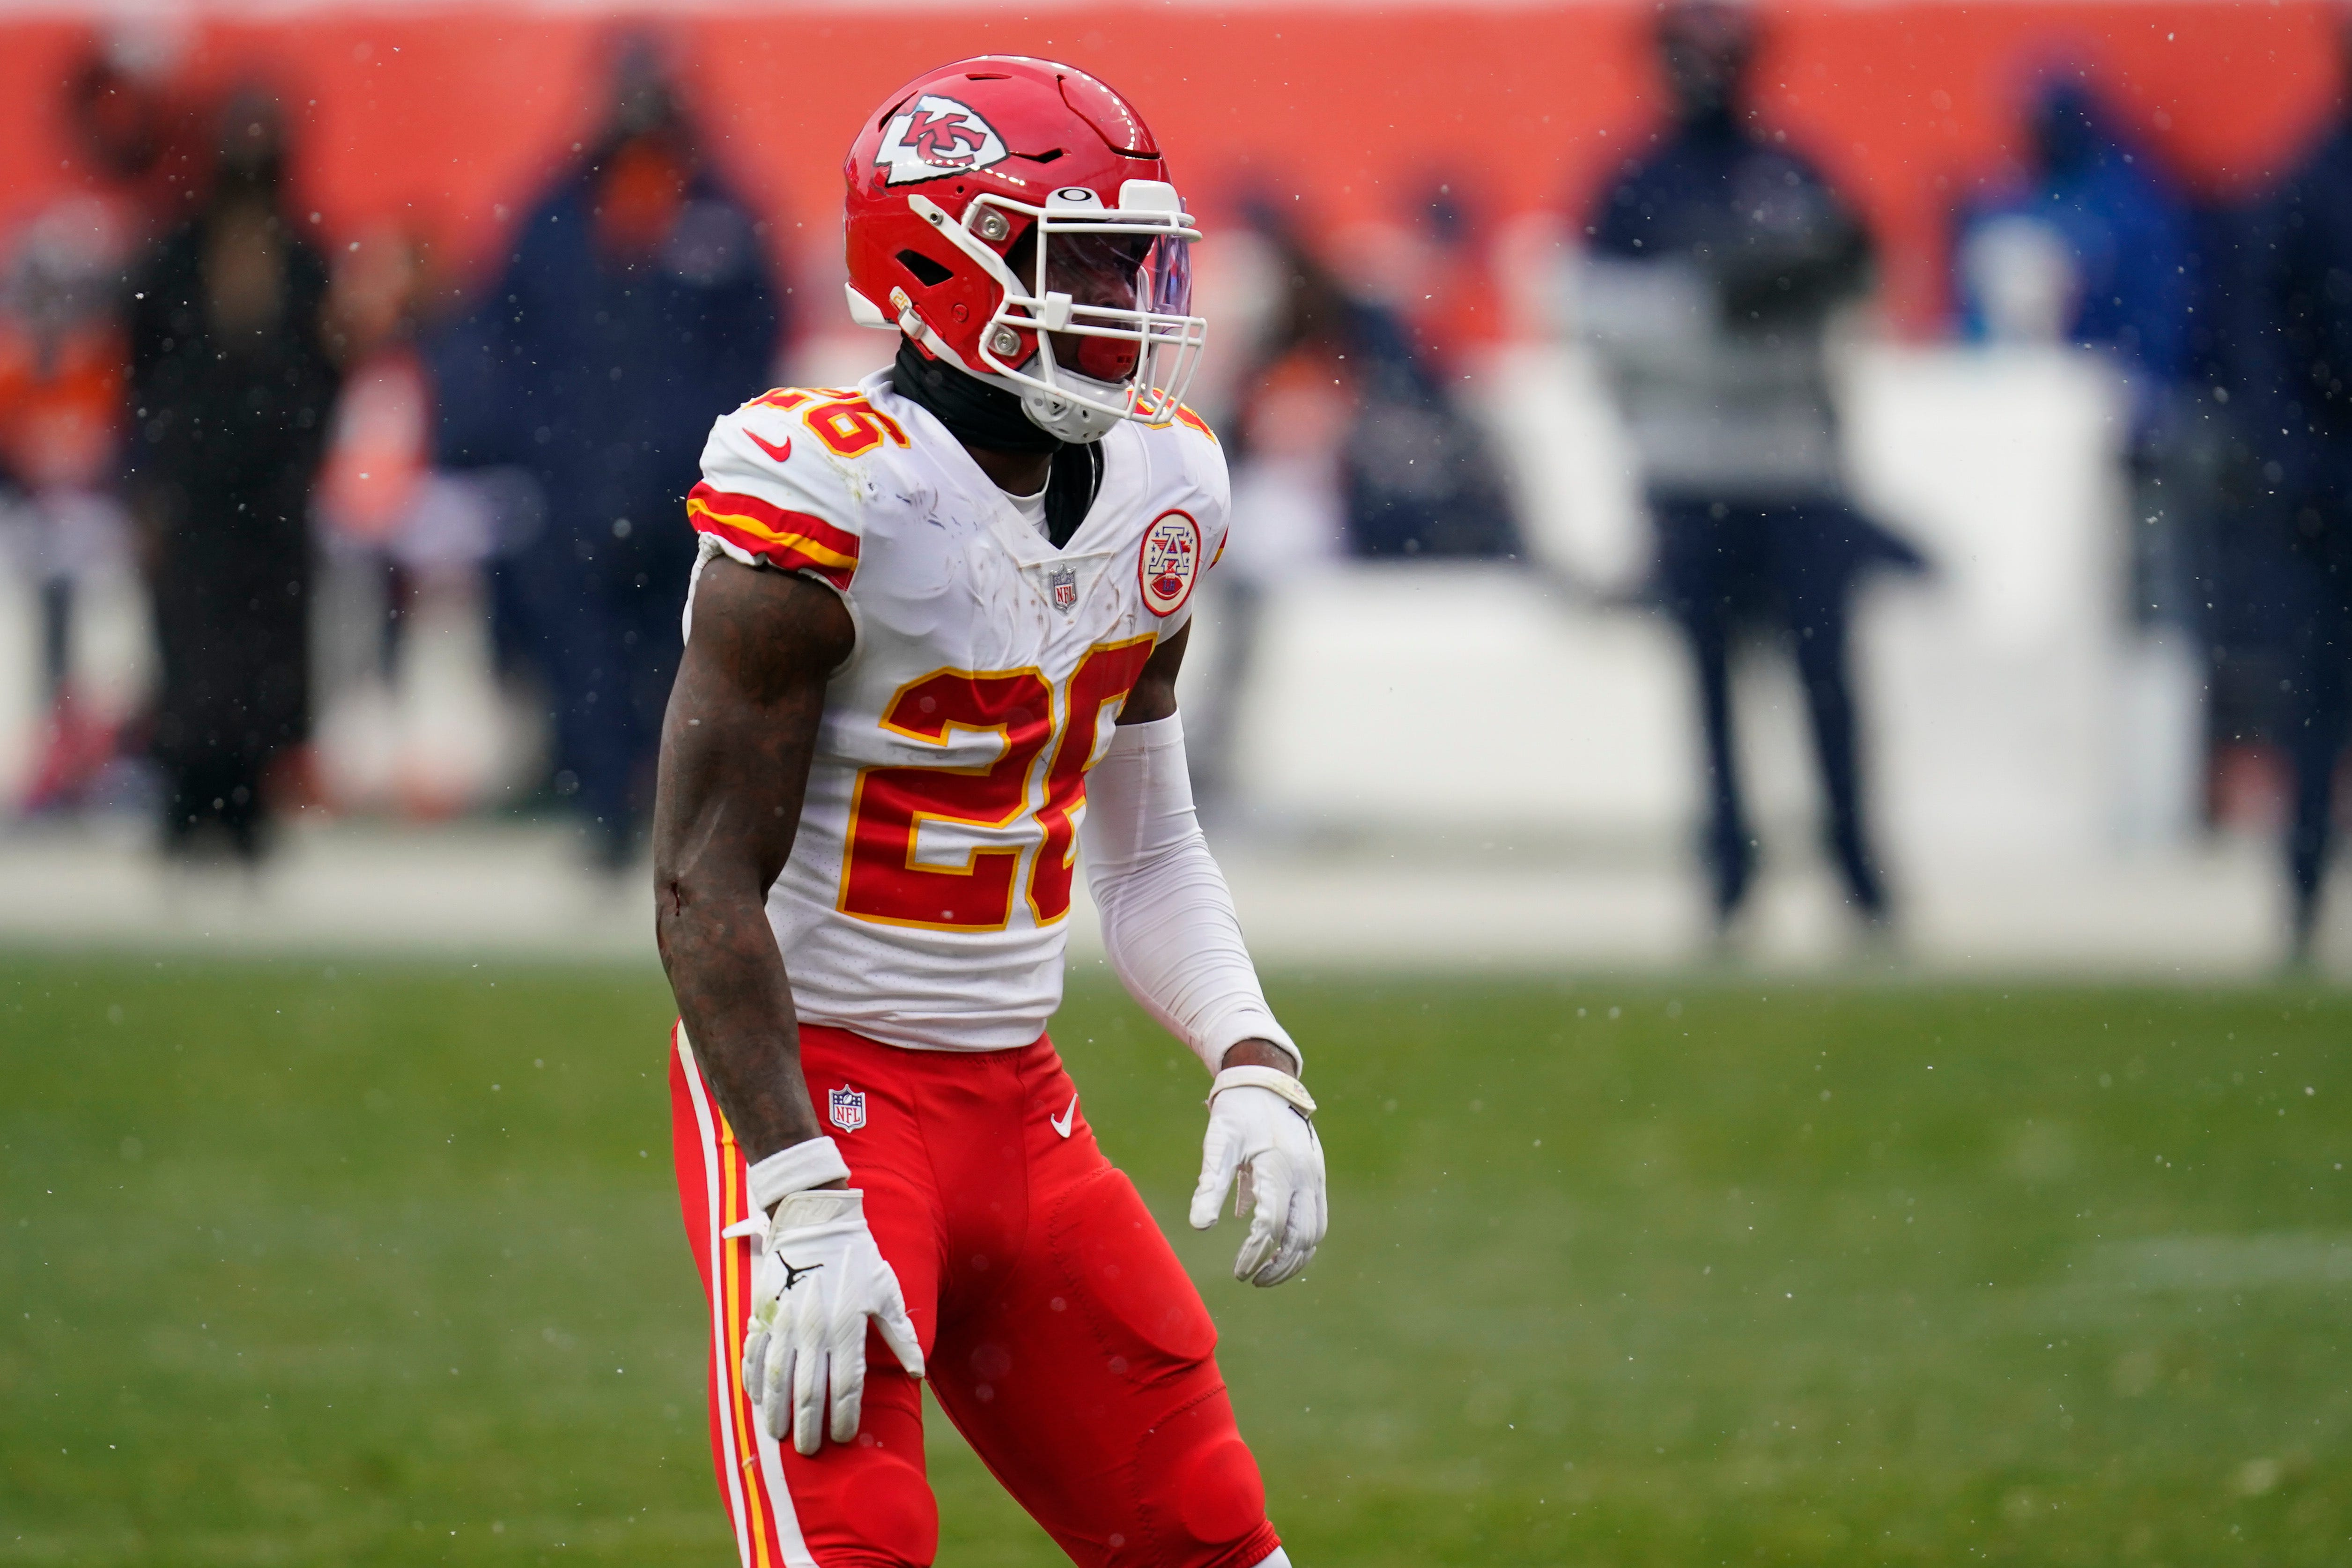 Le'Veon Bell on playing for Chiefs coach Andy Reid in future: 'I'd retire first'